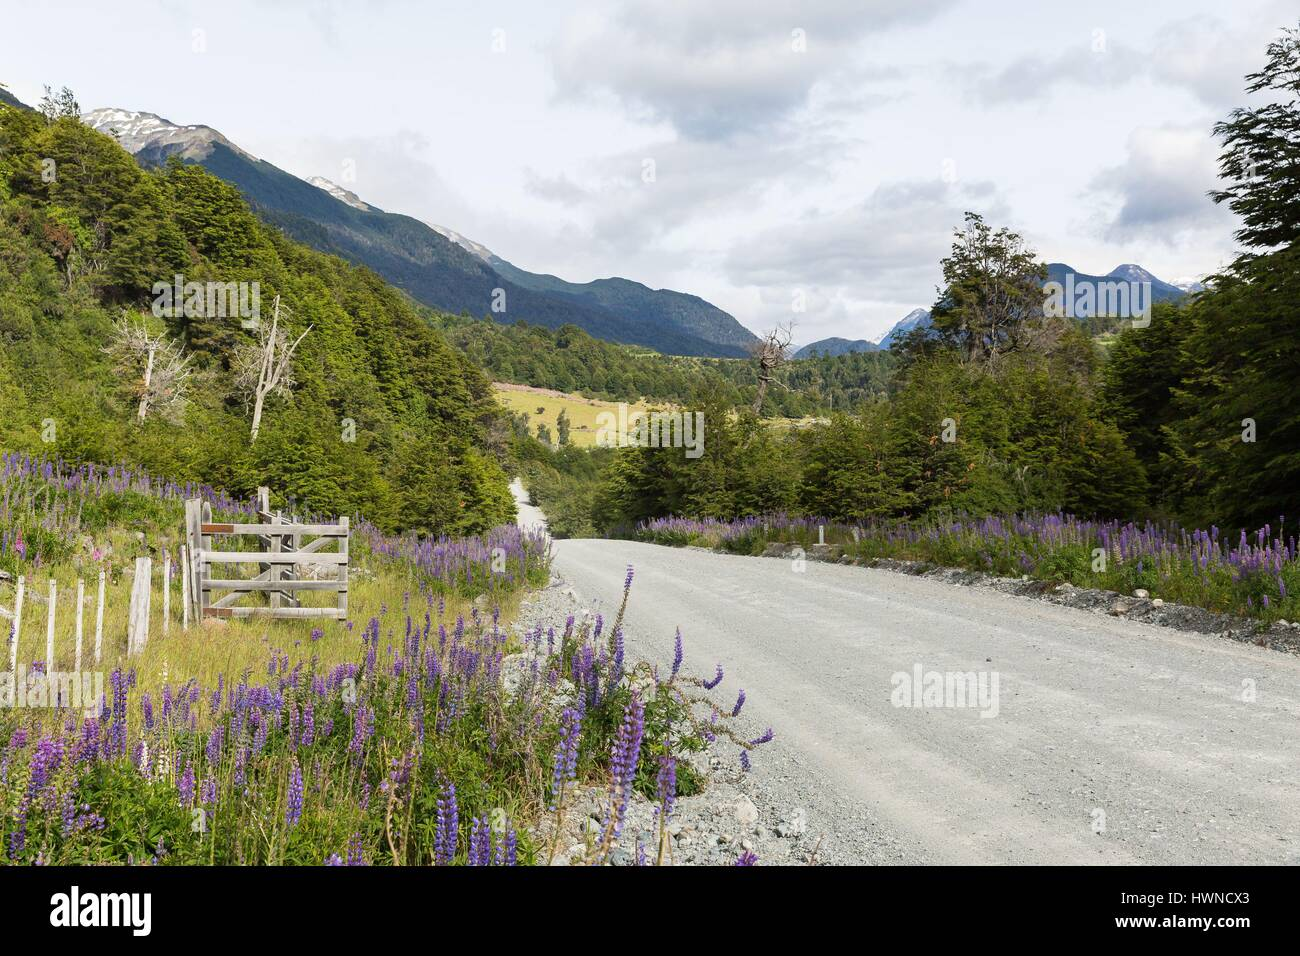 Chile, Patagonia, Aysen region, the southern route or Carretera Austral - Stock Image